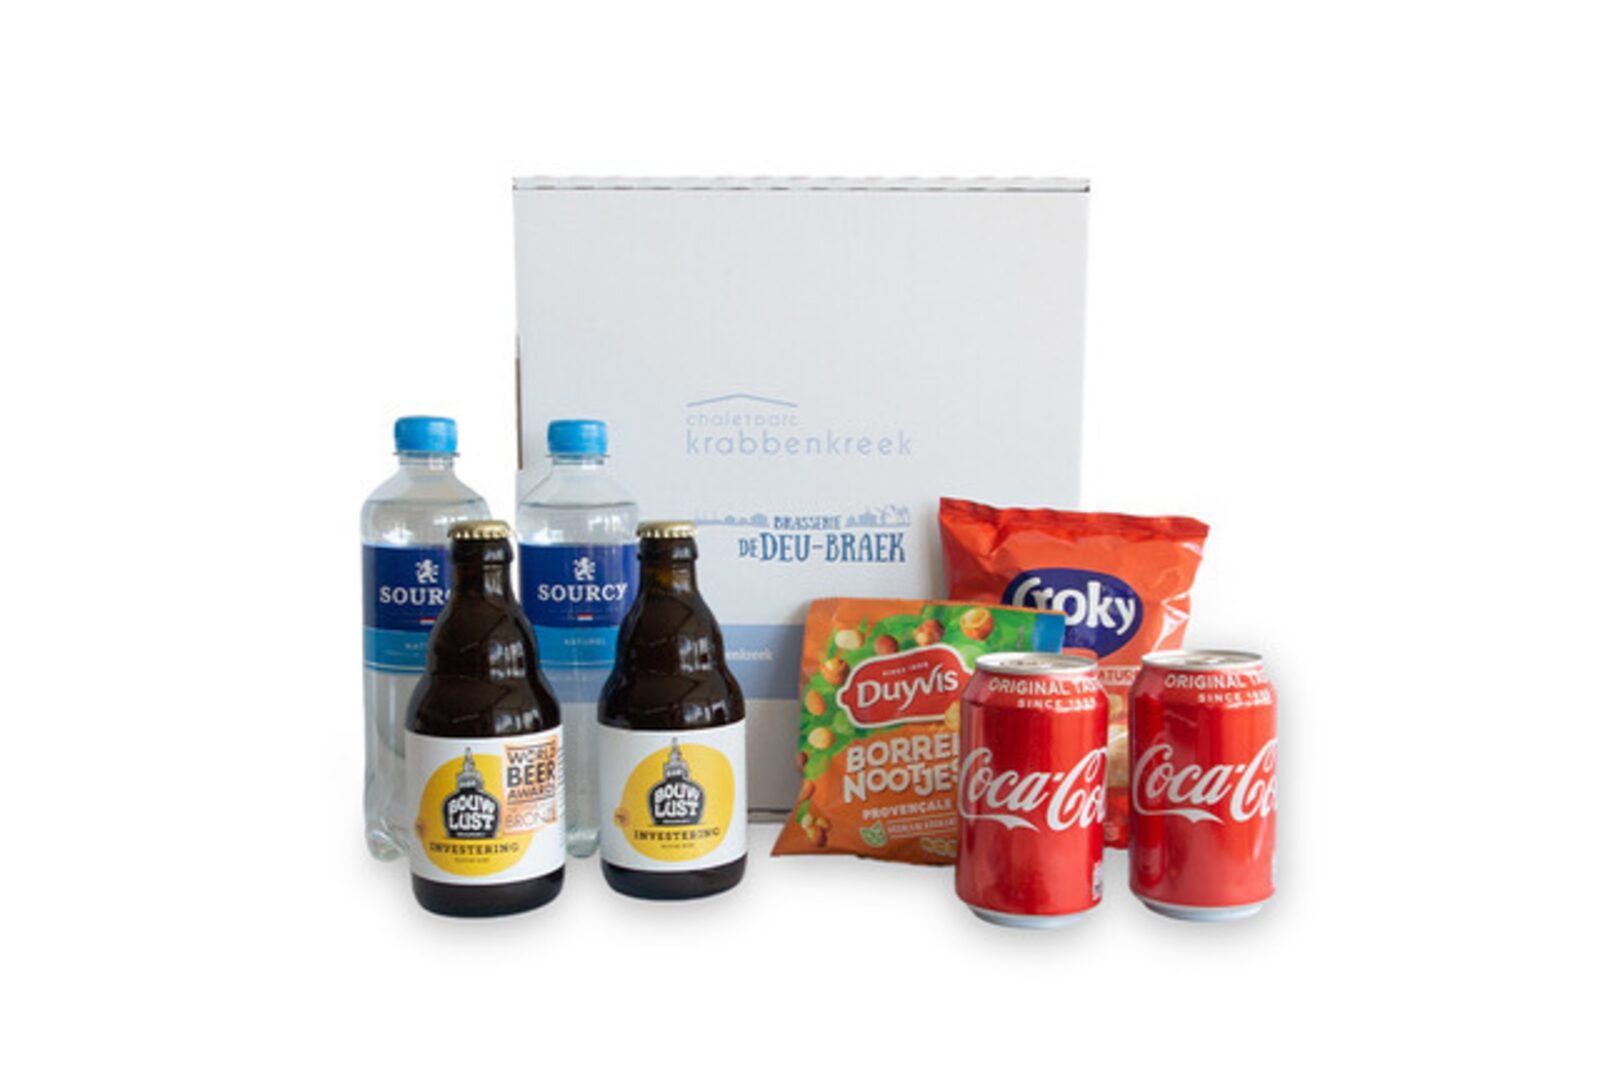 Minibar package with beer